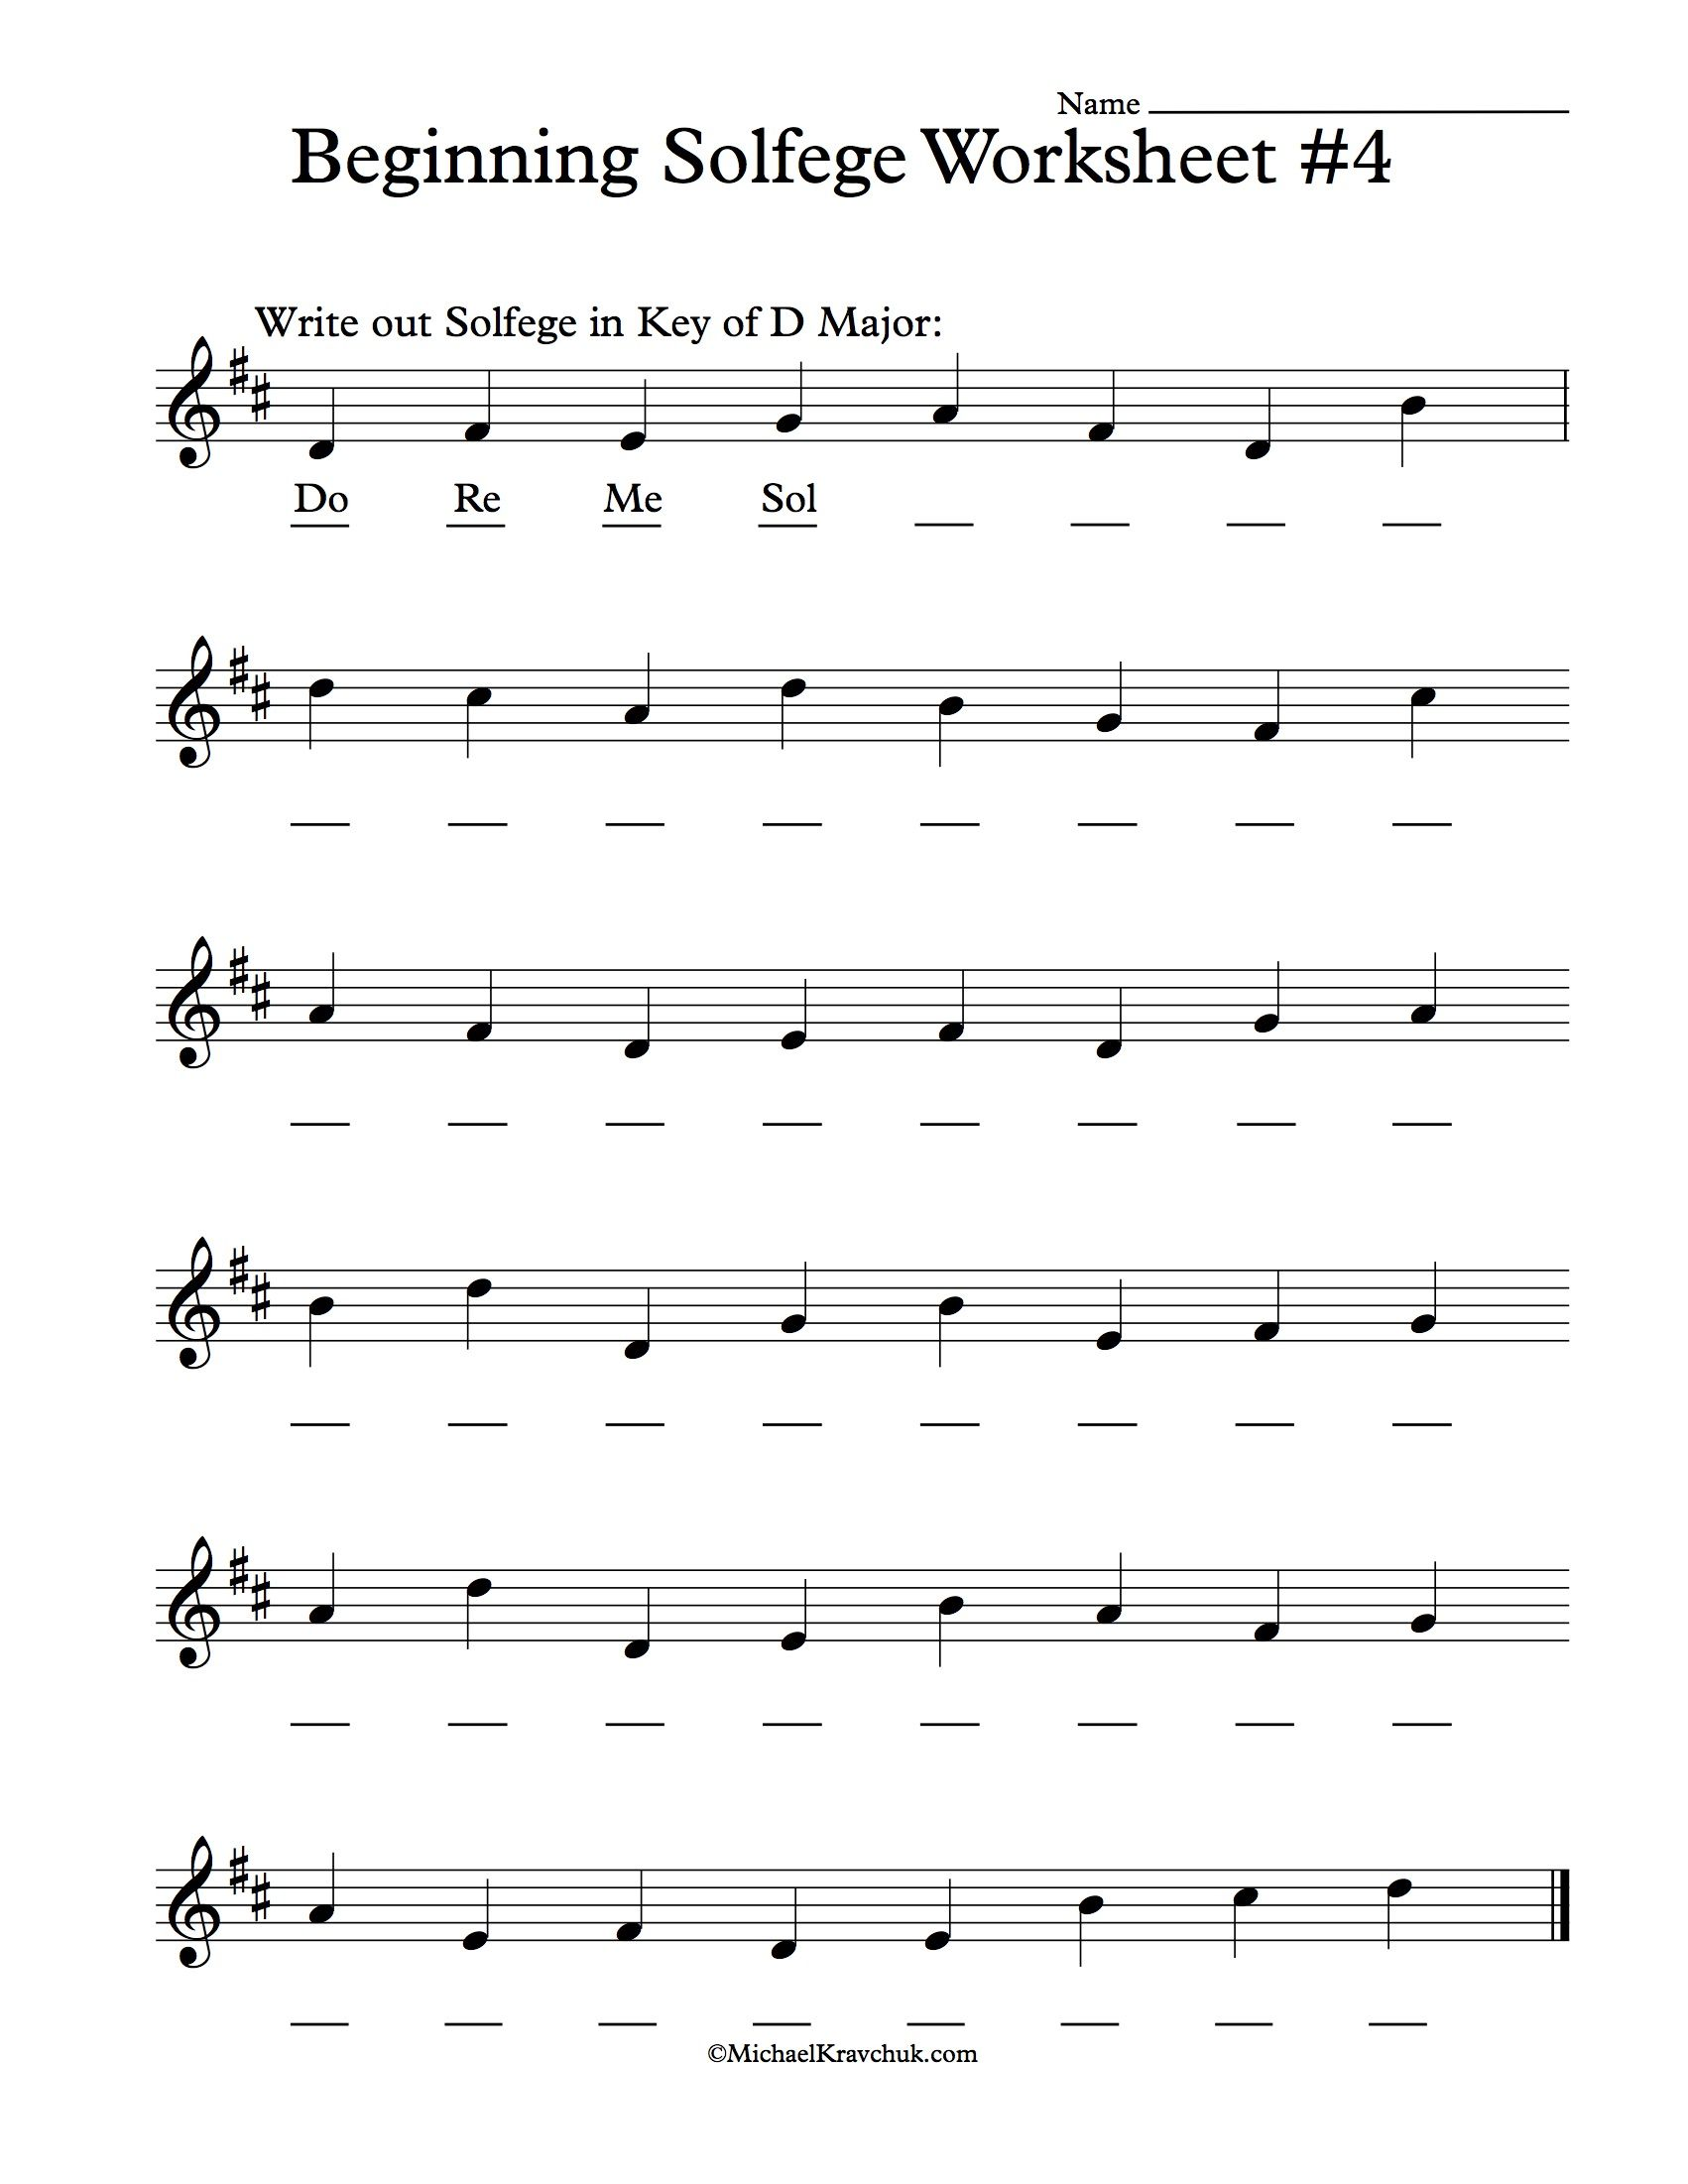 Worksheets Basic Music Theory Worksheets free solfege worksheets for classroom instruction beginning worksheet 4 instructions